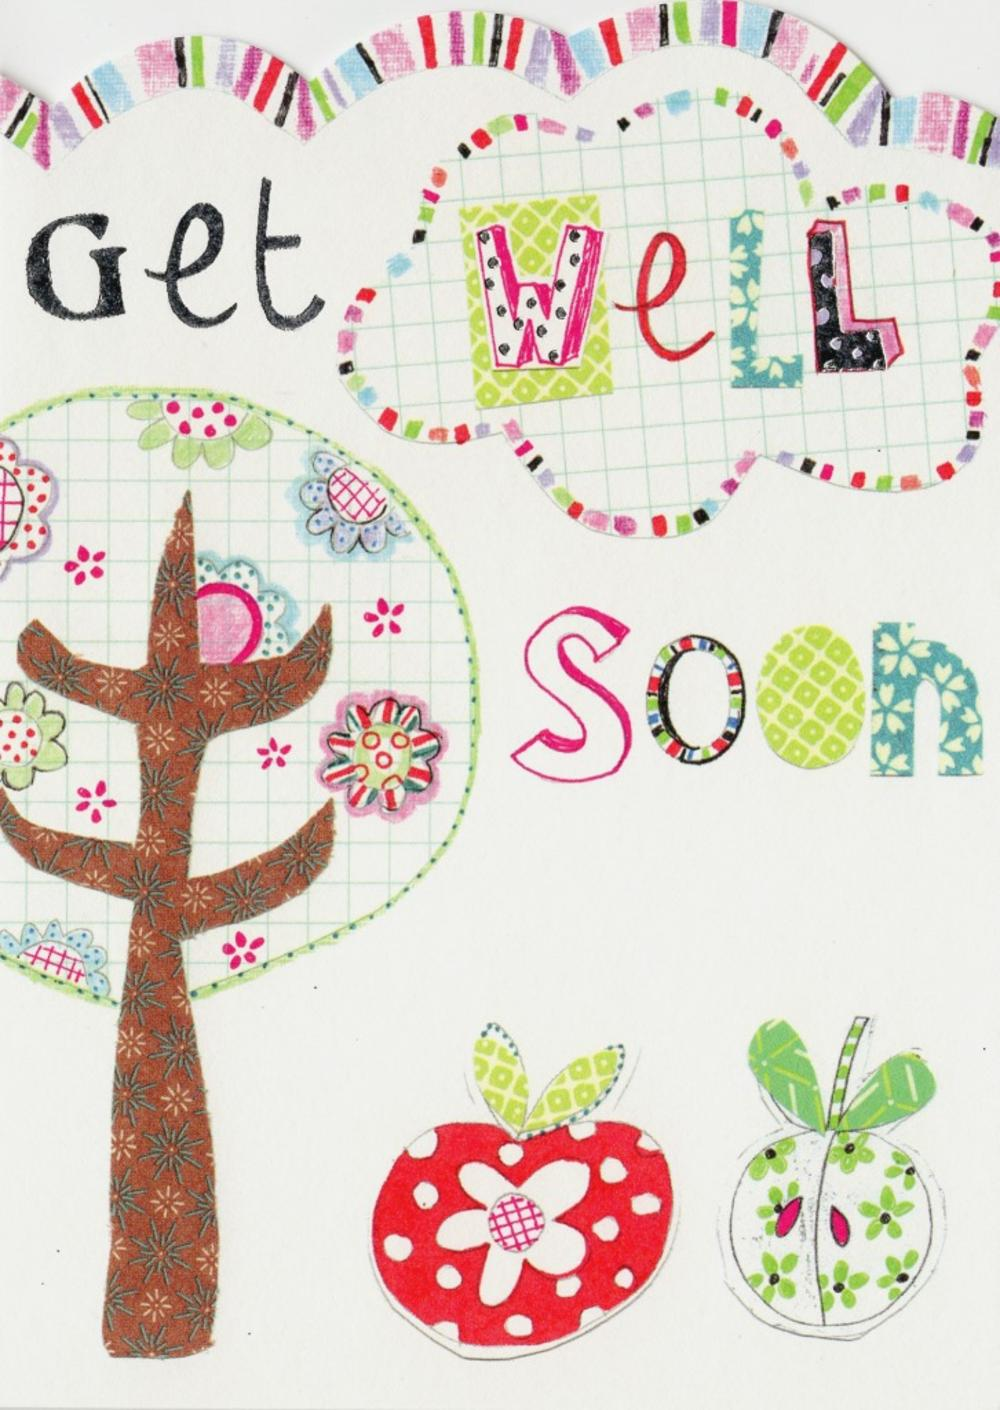 Get Well Soon Paper Salad Greeting Card